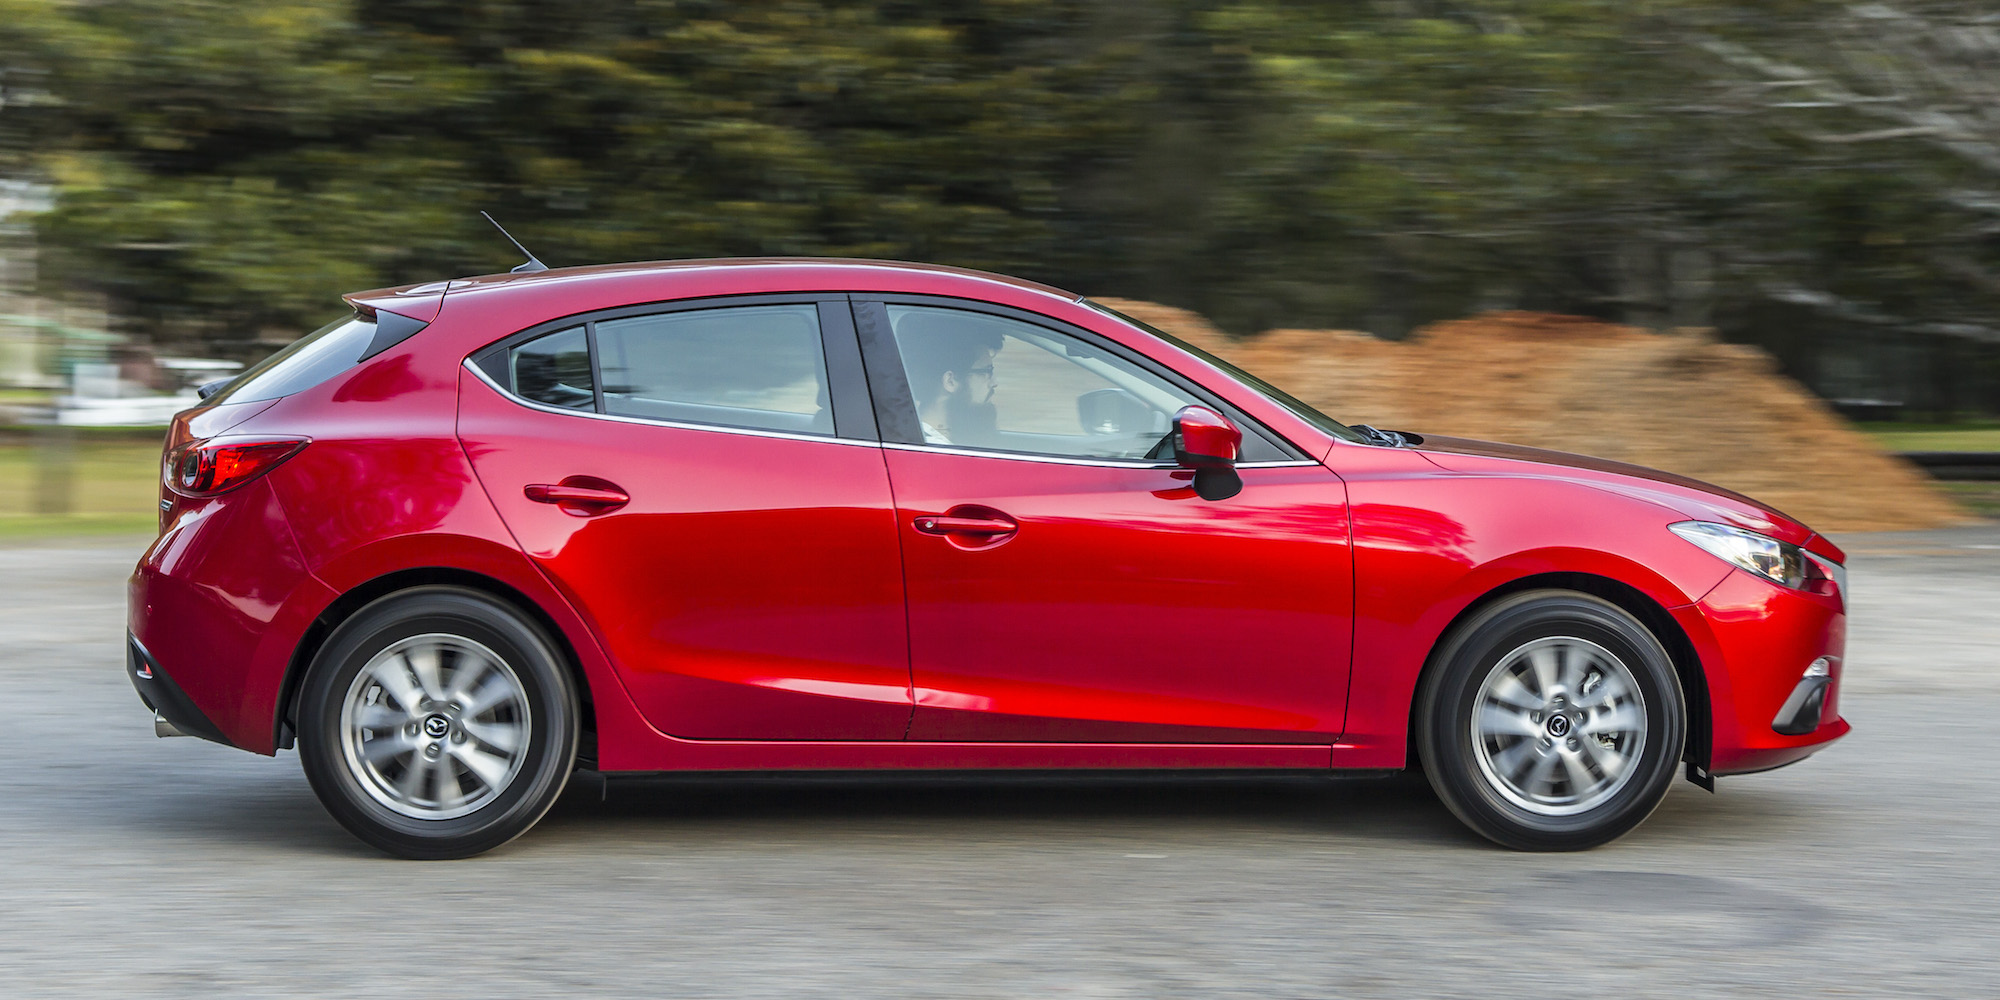 Perfect Mazda 3 V Toyota Corolla V Hyundai I30 Small Hatch Comparison  Photos